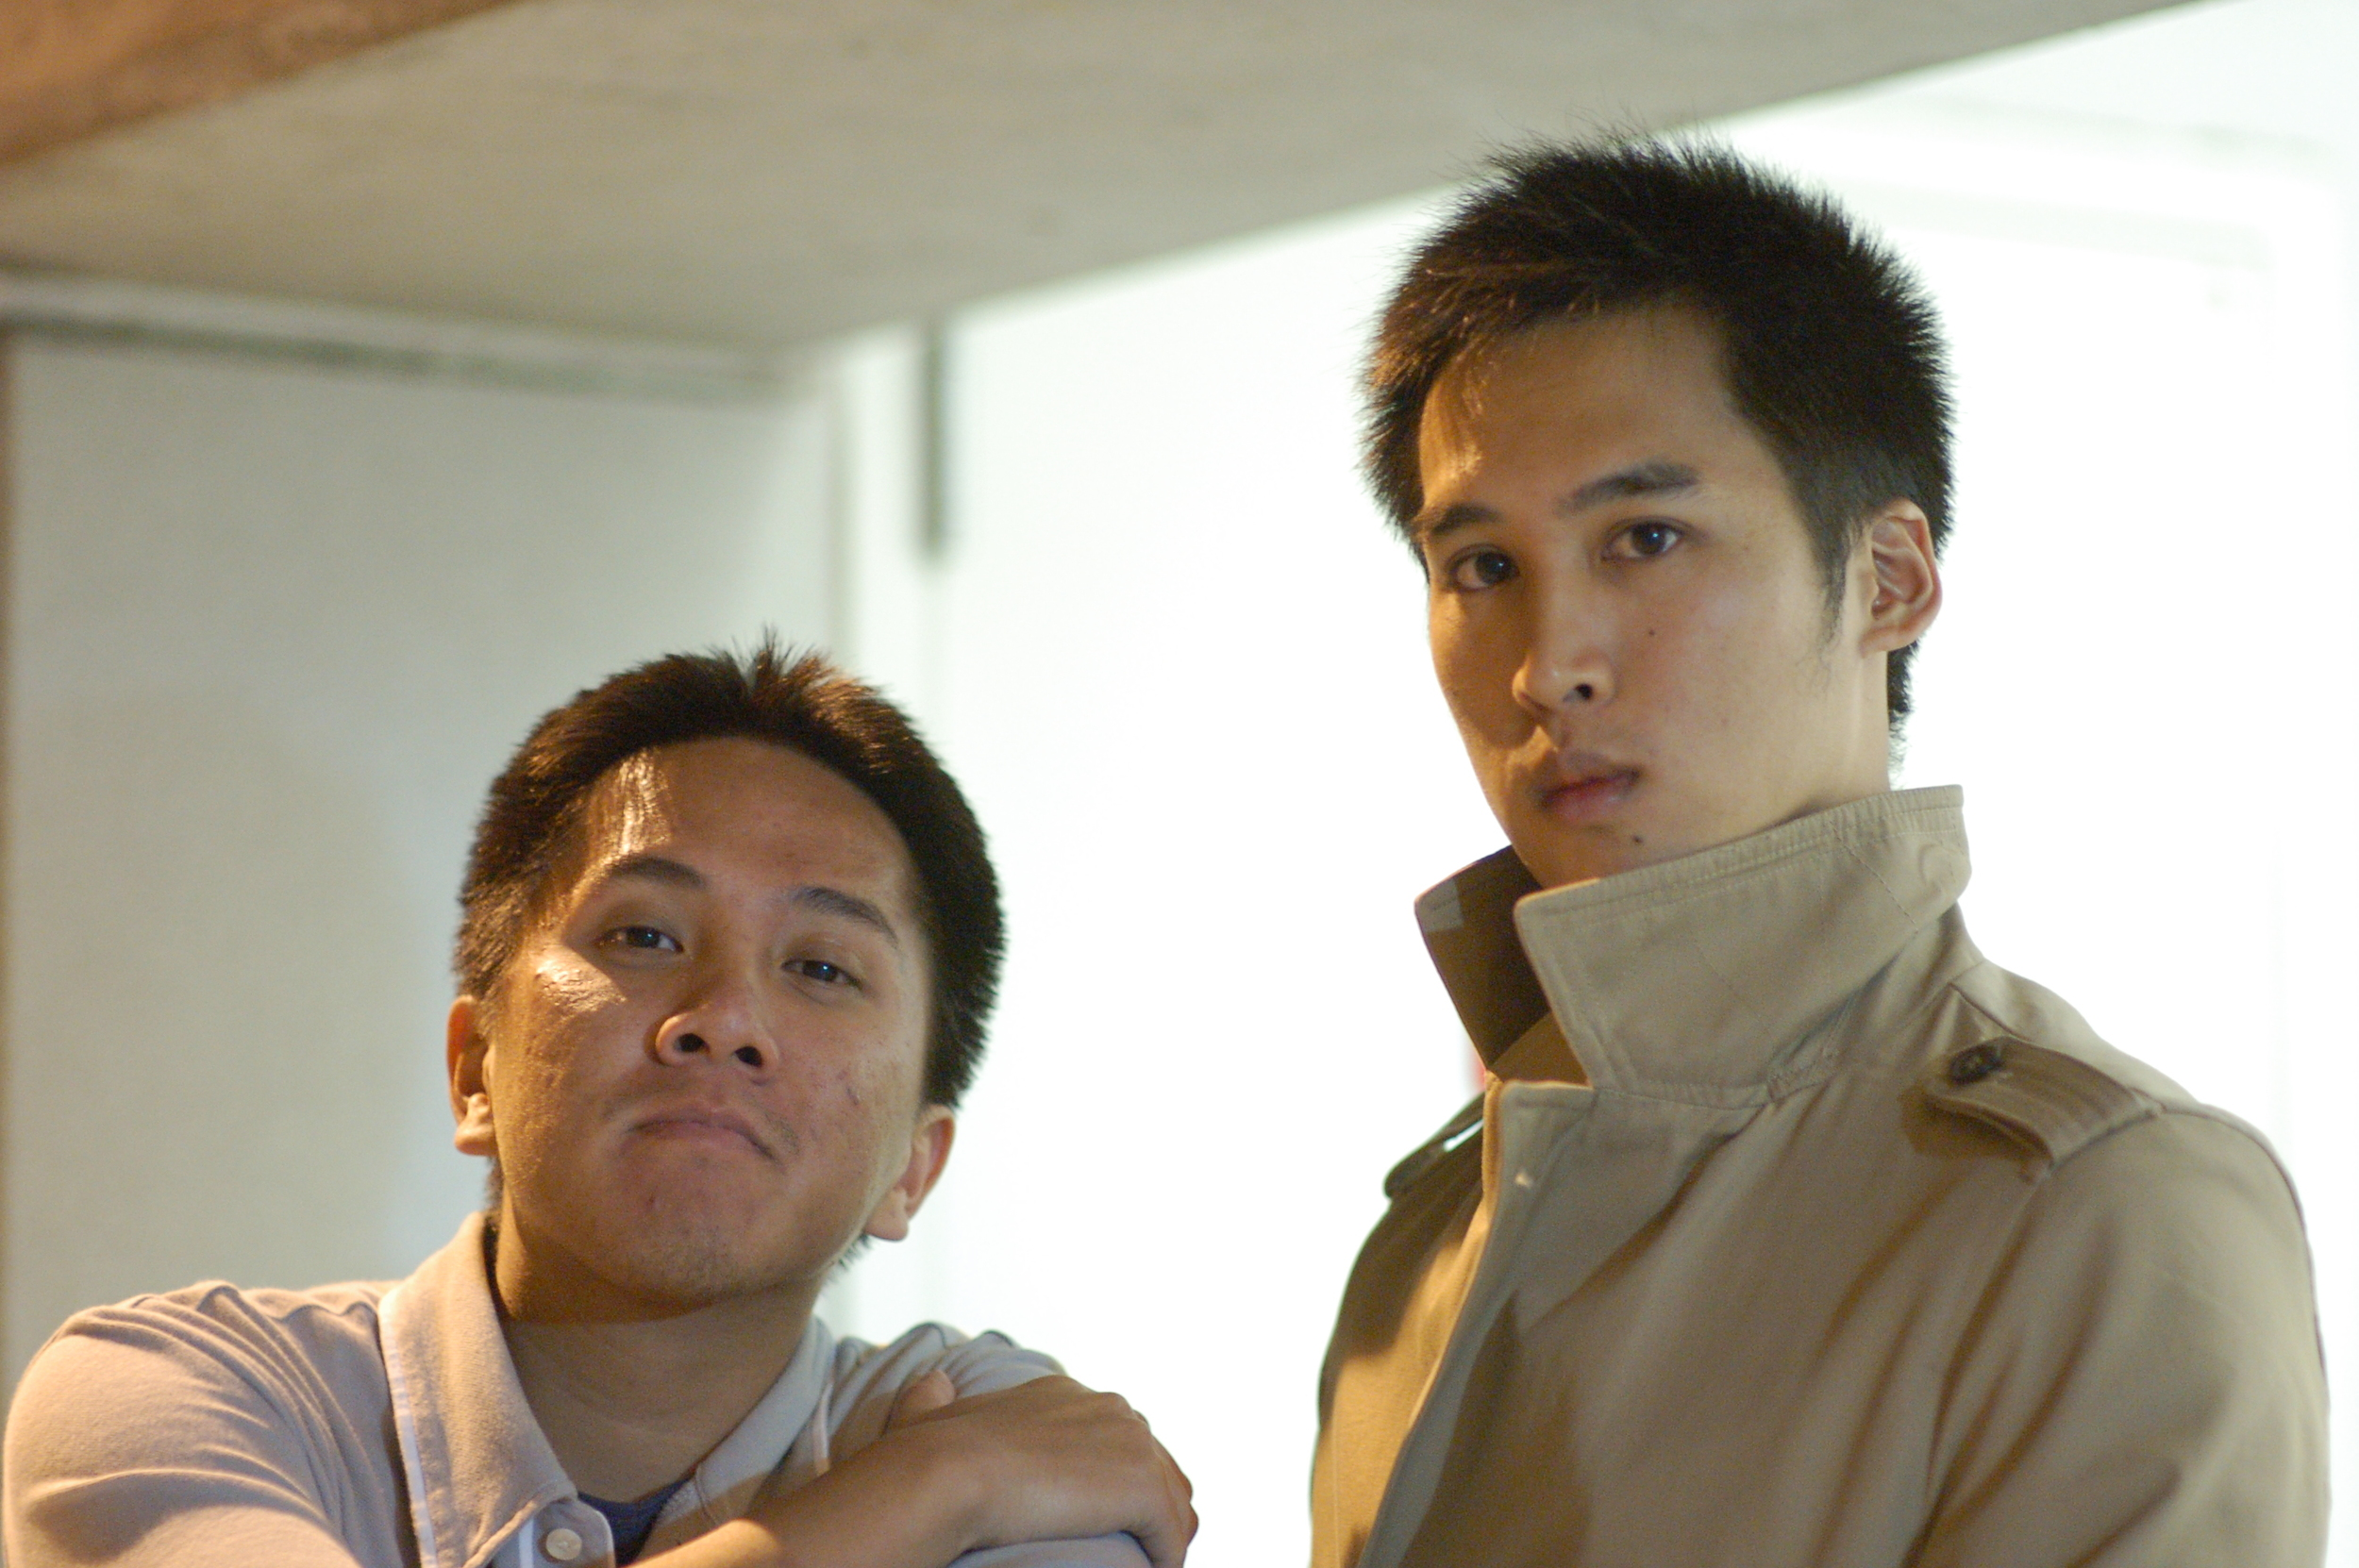 The Double A's: Long Bao Huynh (left), James Y. Shih (right)